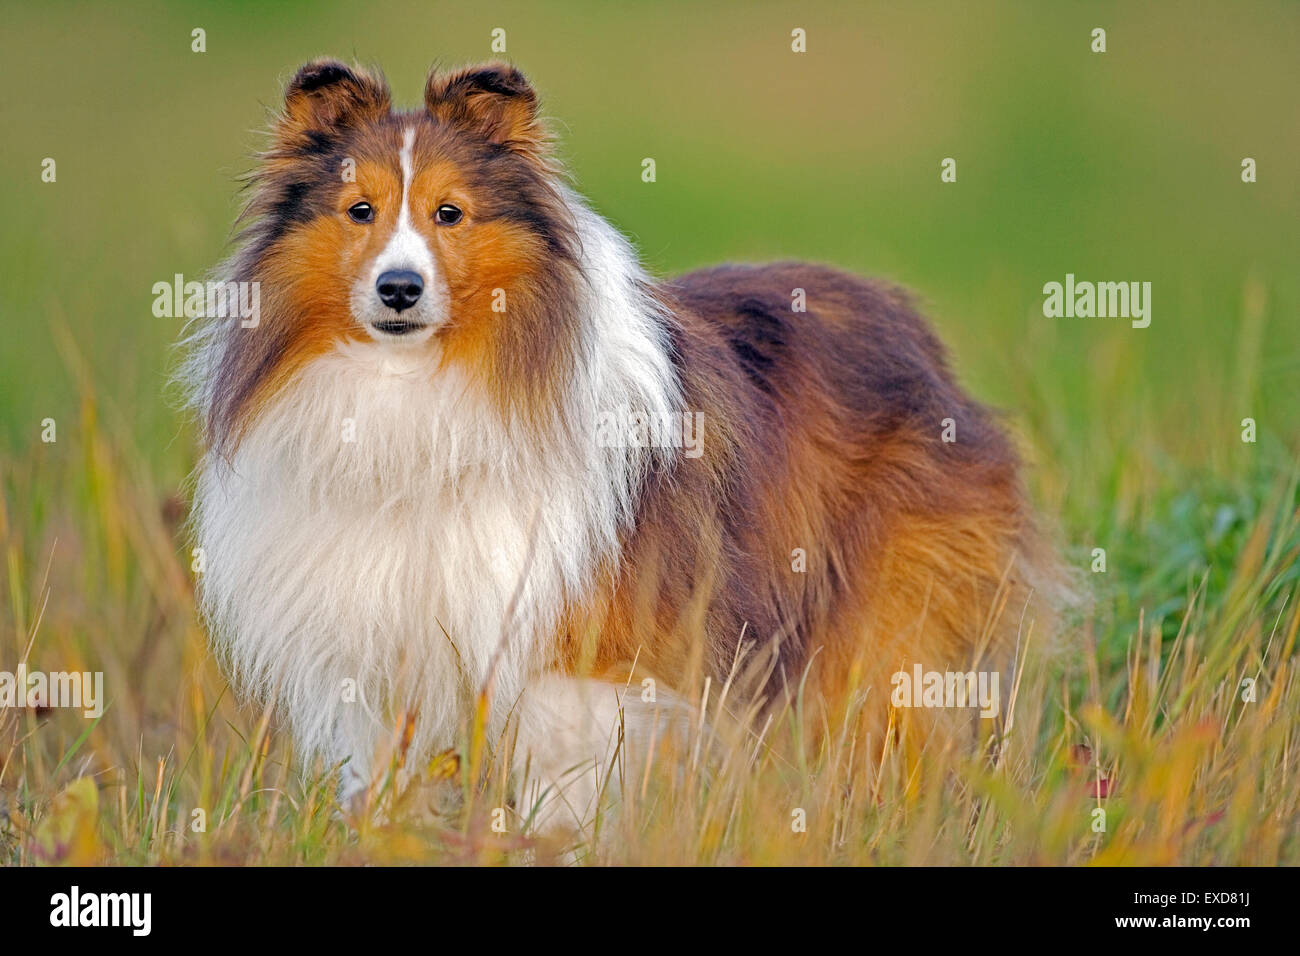 Shetland Sheepdog standing in meadow, automne Photo Stock